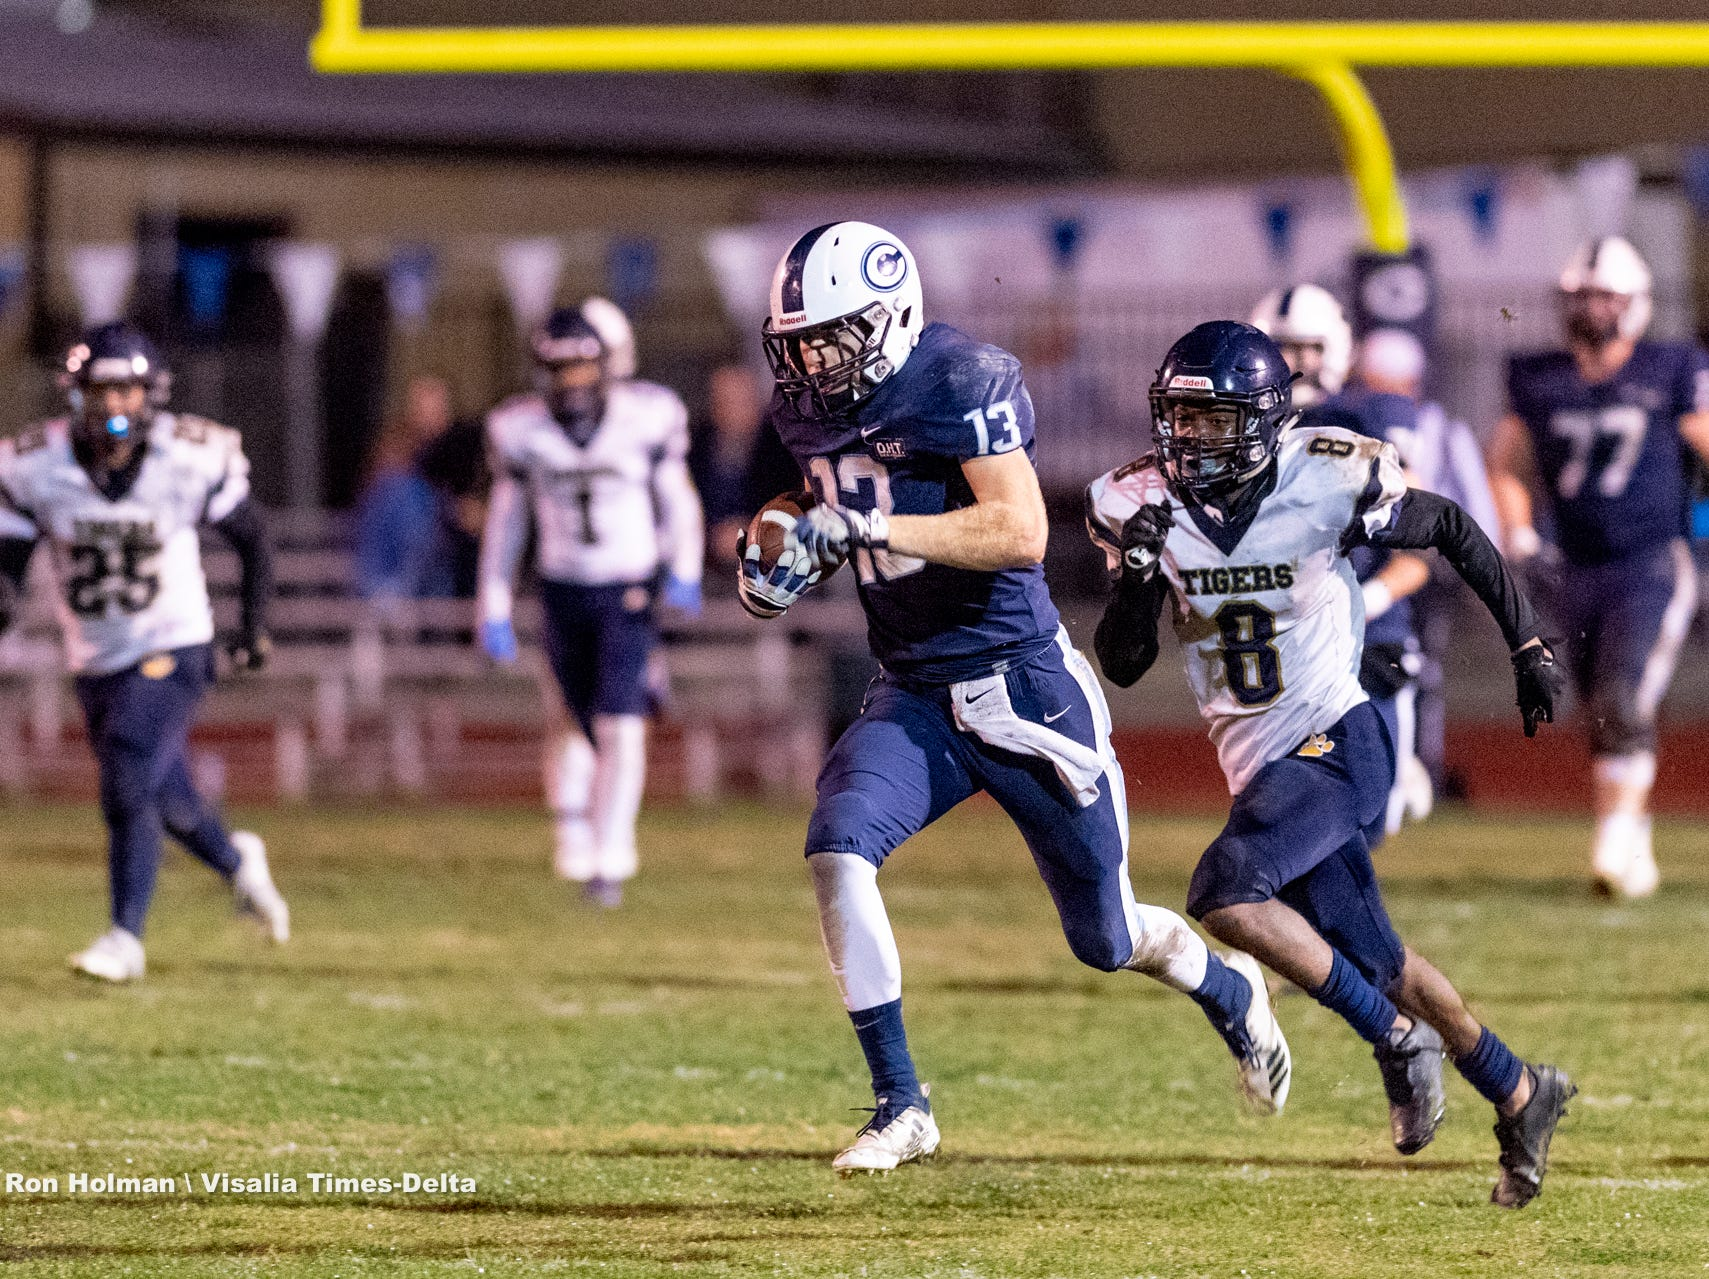 Central Valley Christian's Dustin Van Grouw runs back an interception against Morse in a CIF SoCal Regional Championship Bowl Game on Friday, November 30, 2018.